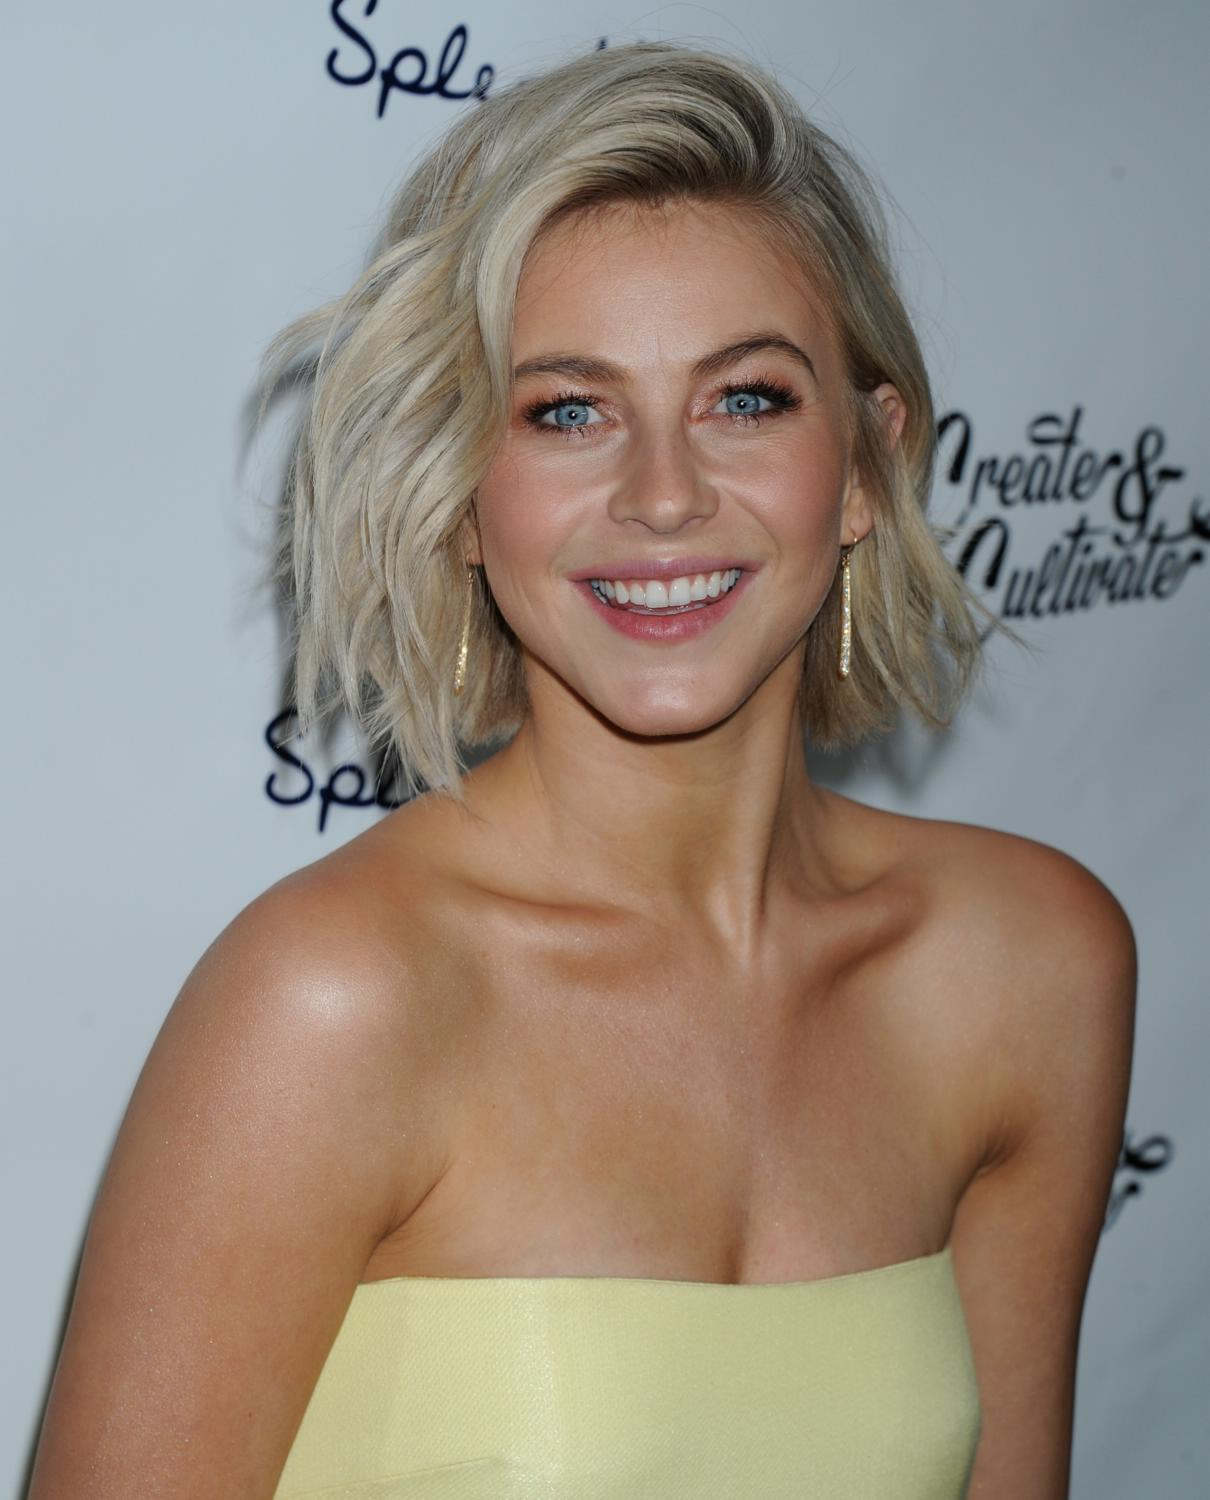 Julianne Hough Photos and wallpapers